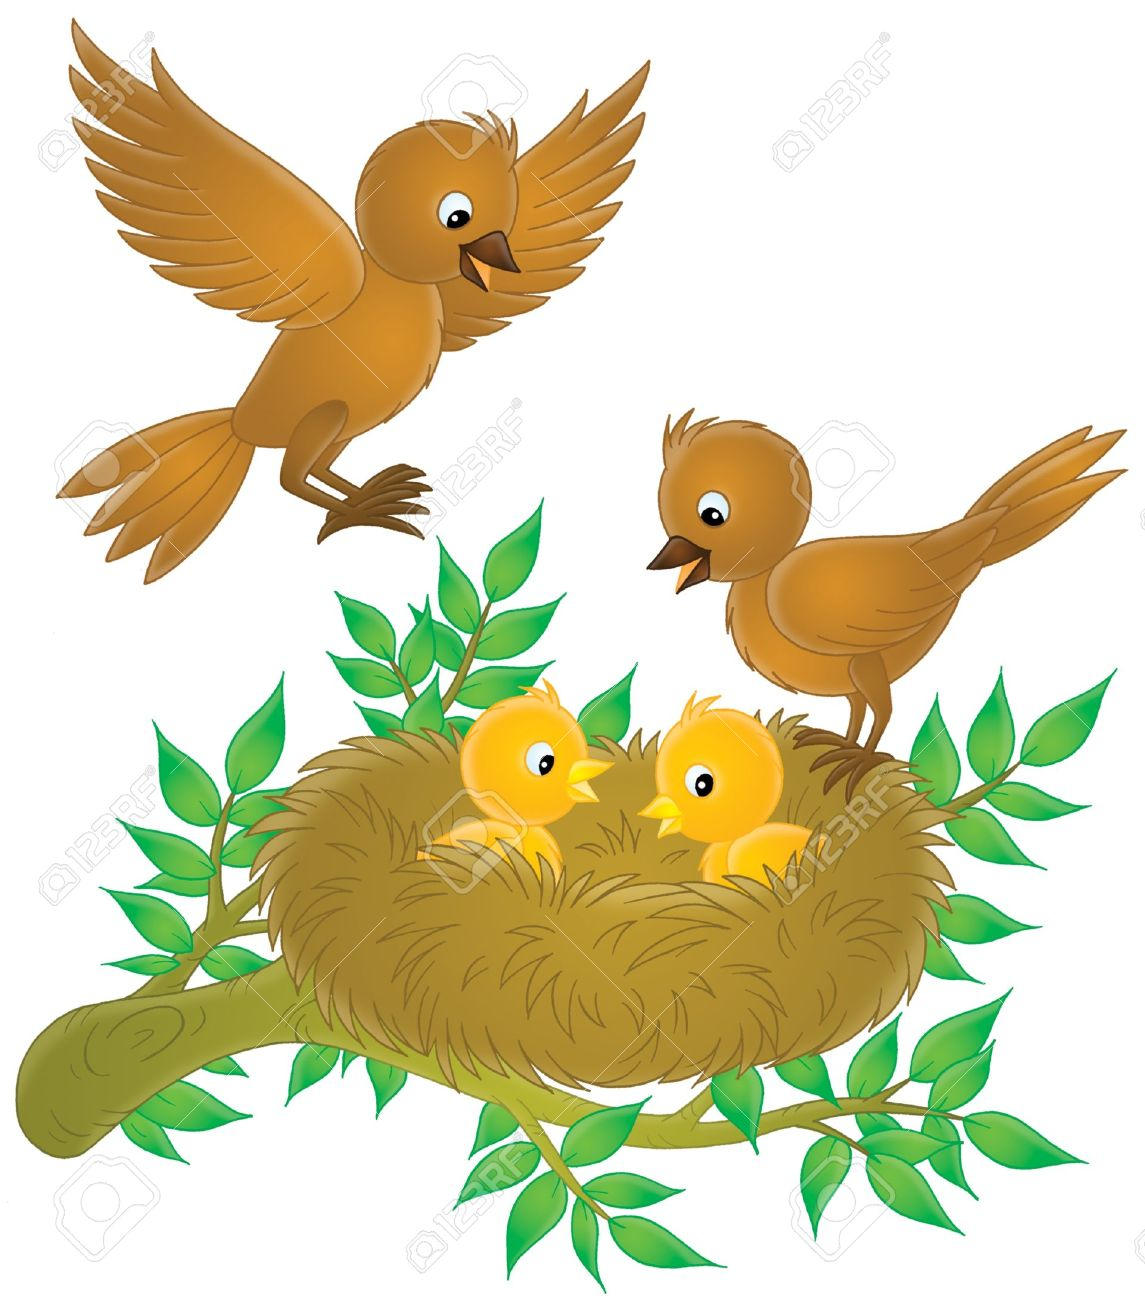 Birds And Nestlings Stock Photo, Picture And Royalty Free Image.